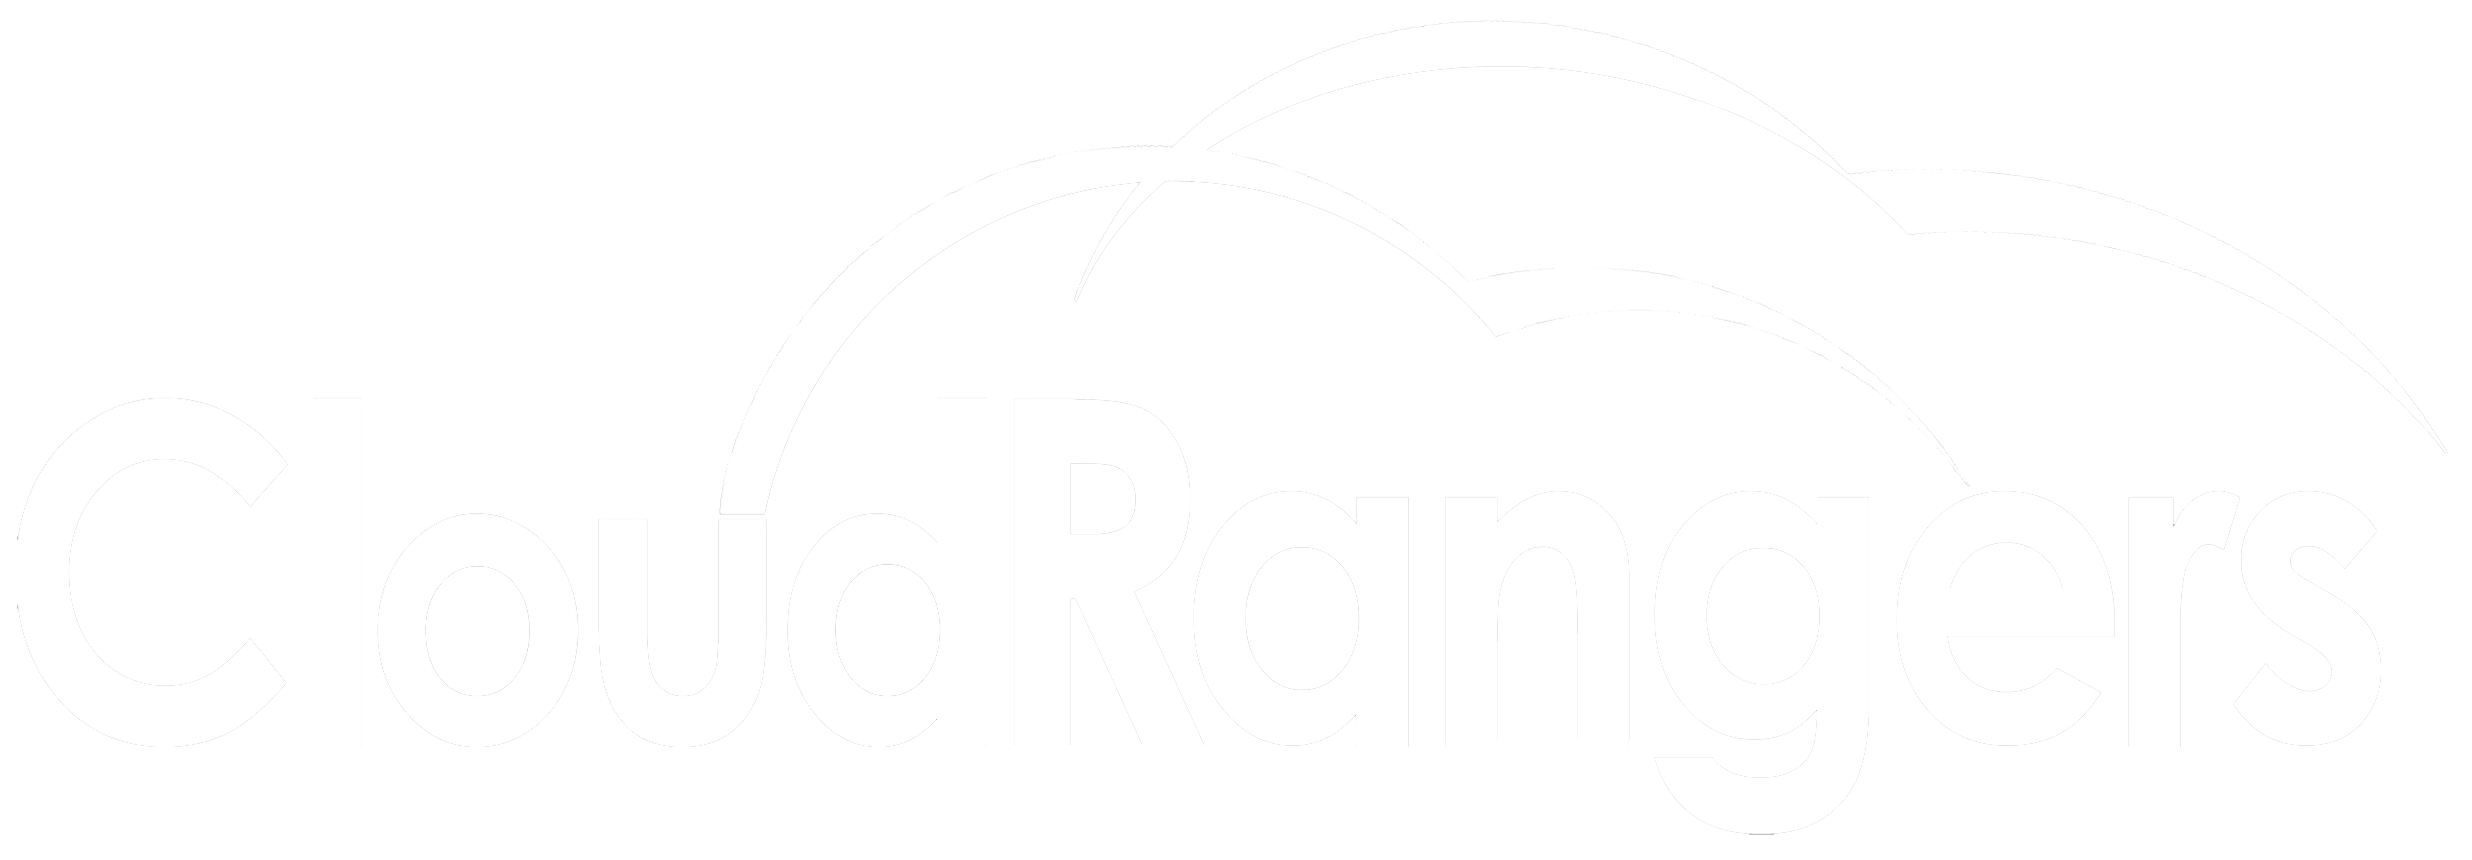 Cloud Rangers Logo